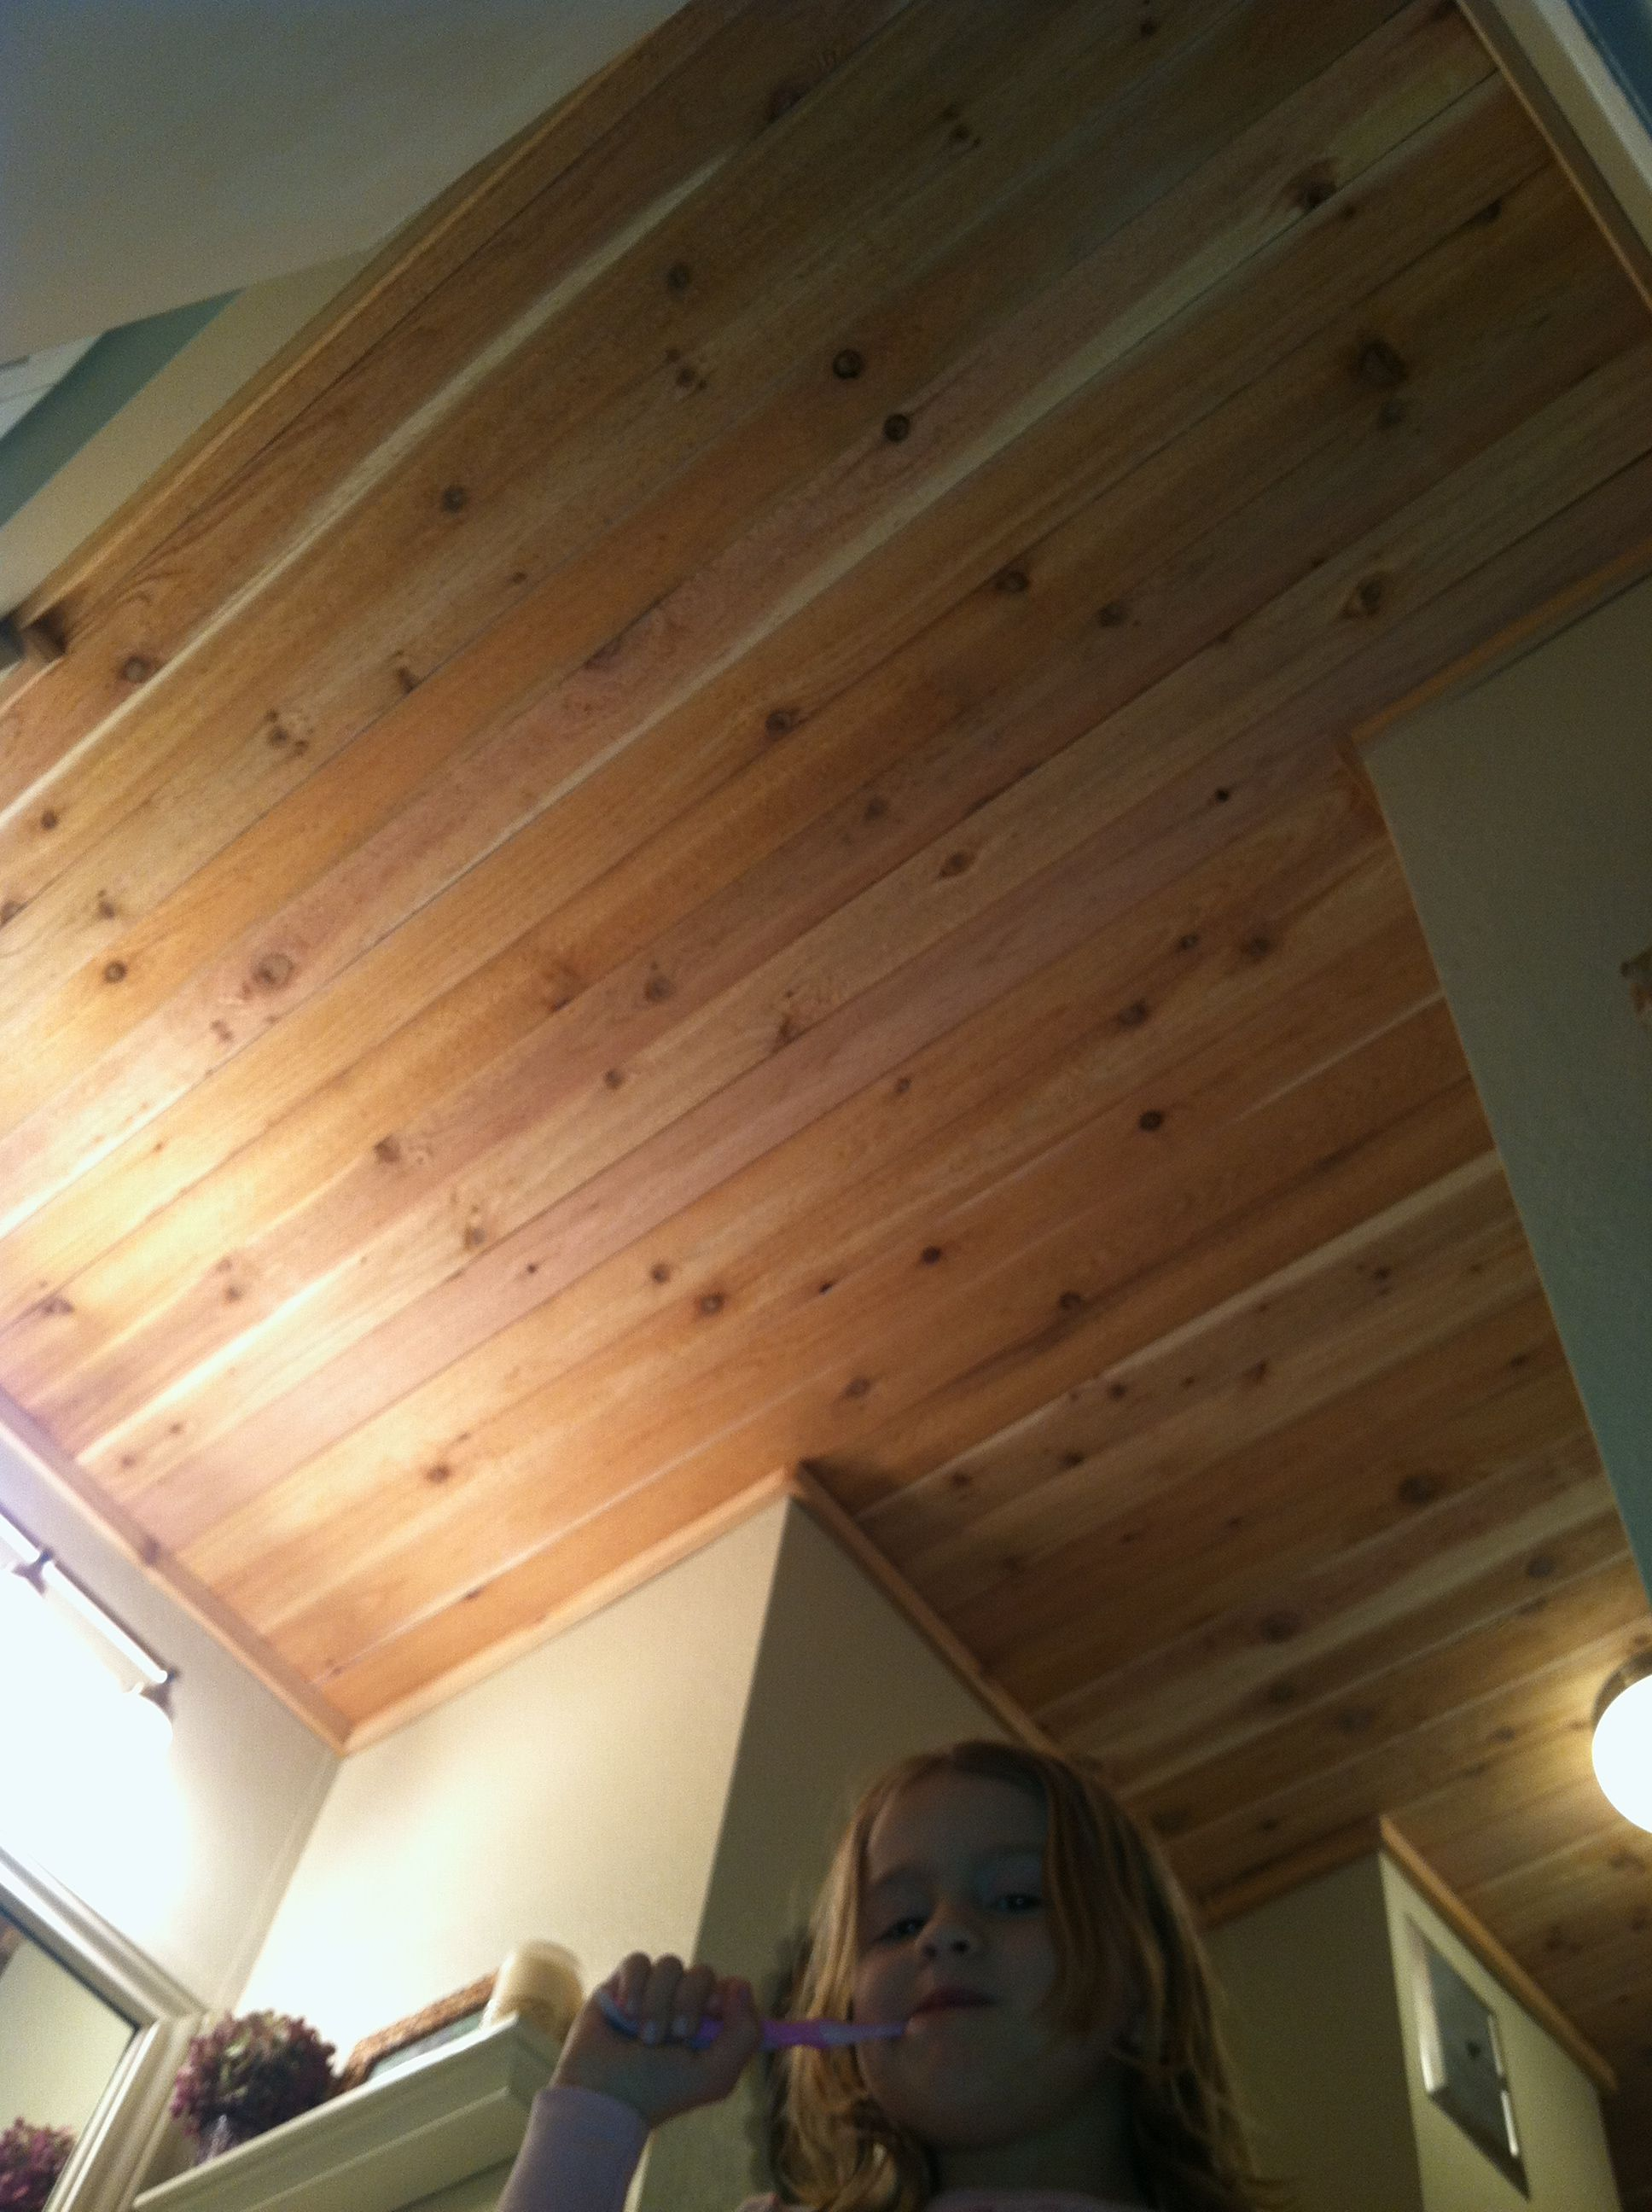 Cedar Plank Bathroom Ceiling And A Cute Face Bathroom Ceiling Kitchen Bathroom Remodel Small Apartment Bathroom